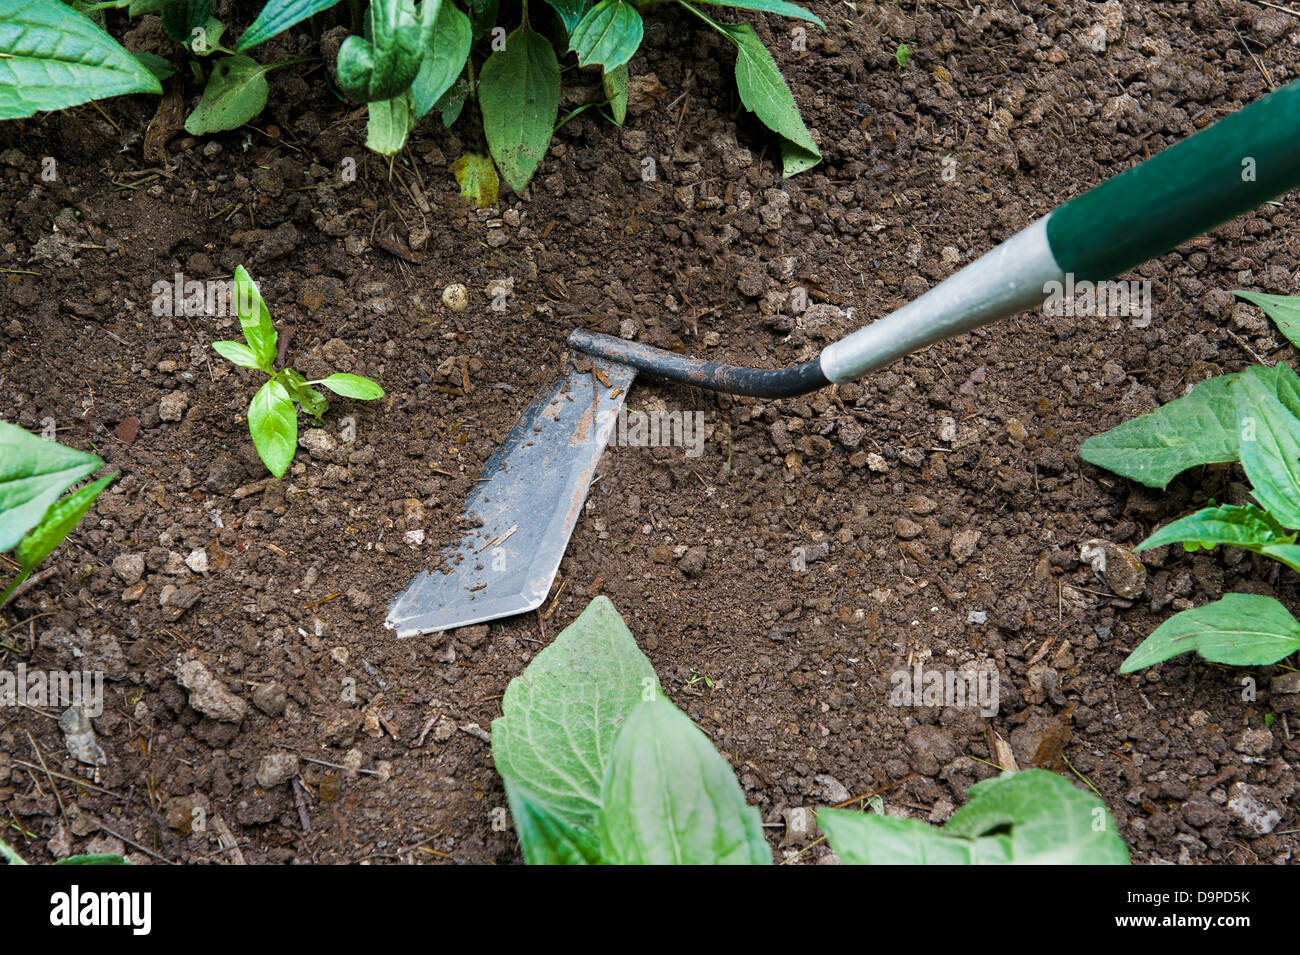 Weeds being removed with a garden hoe. - Stock Image